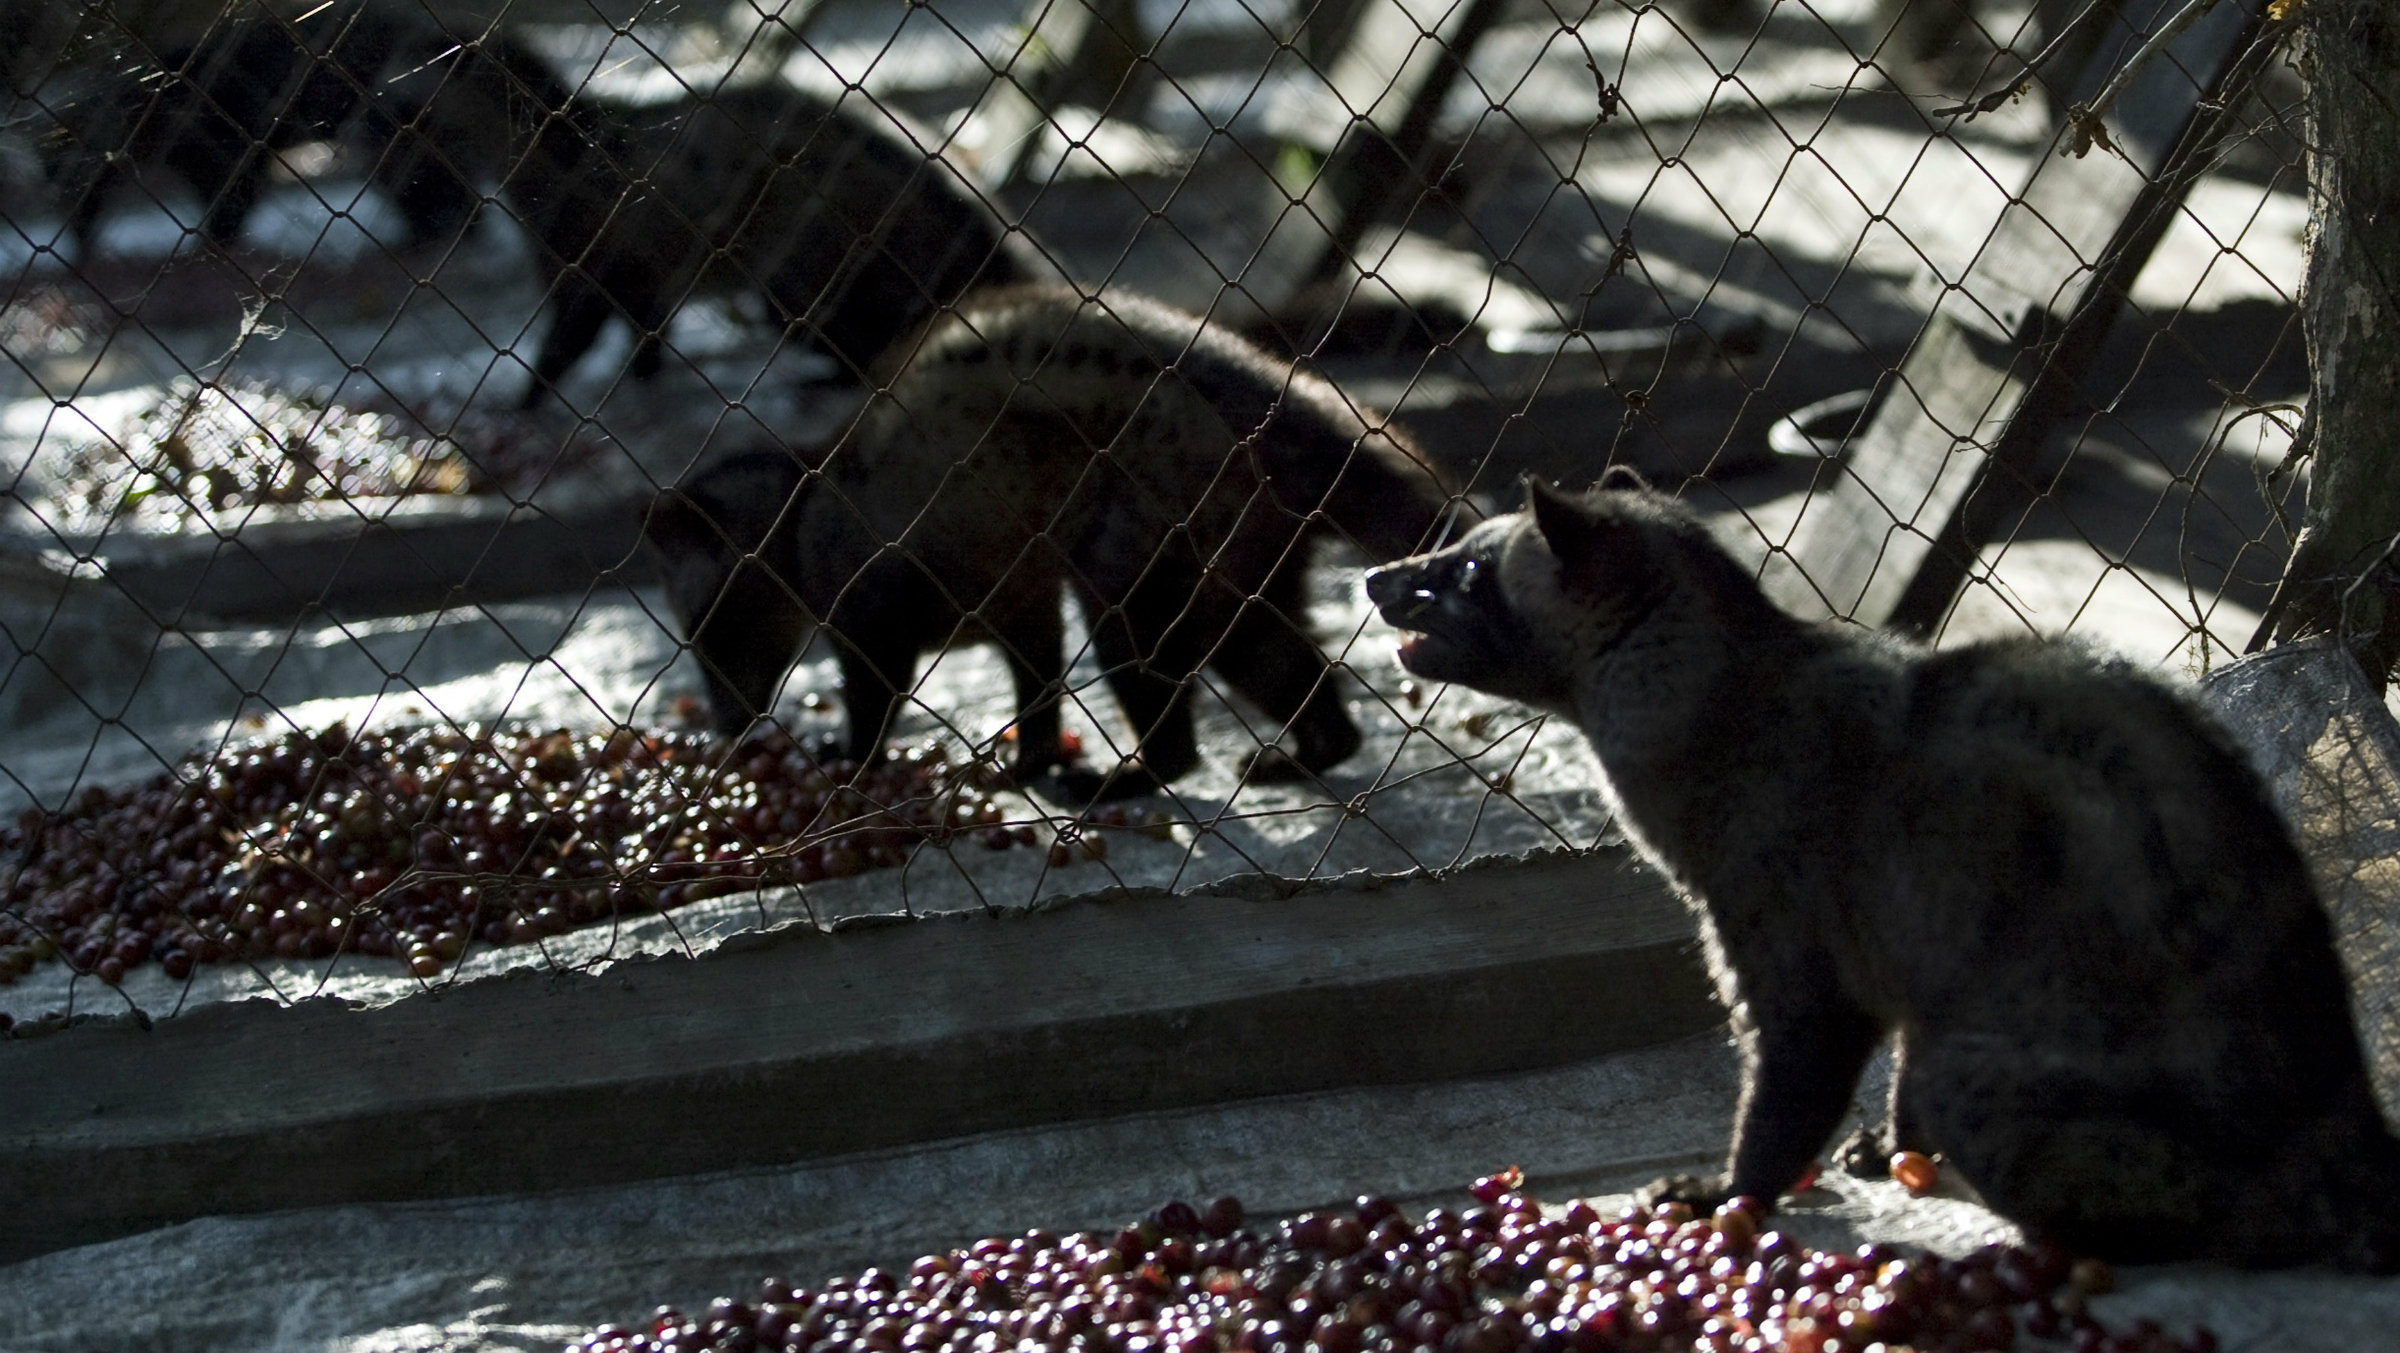 A civet coffee farm in Indonesia.